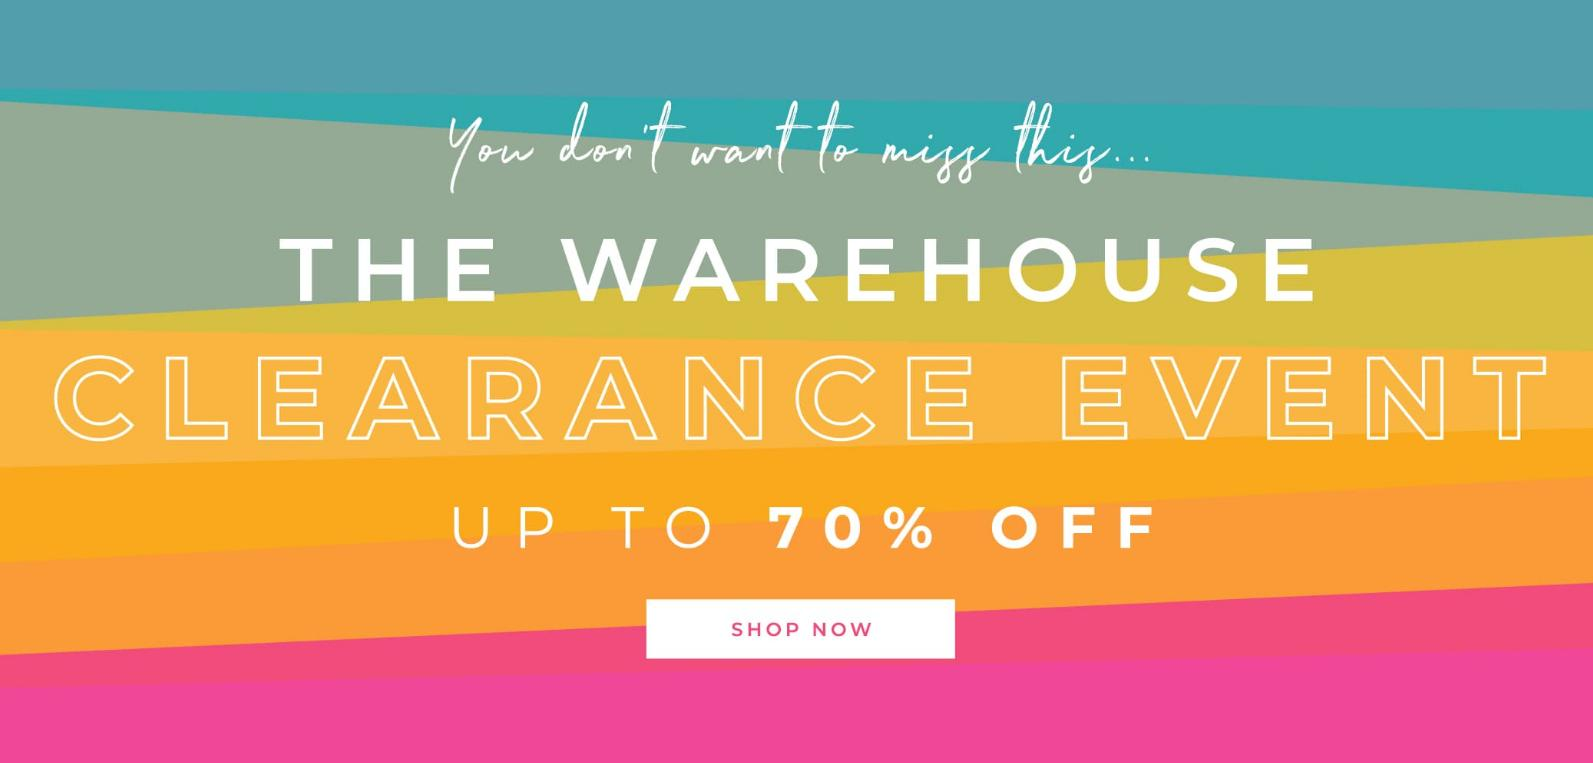 Evans Clothing: Sale up to 70% off plus size clothing and shoes